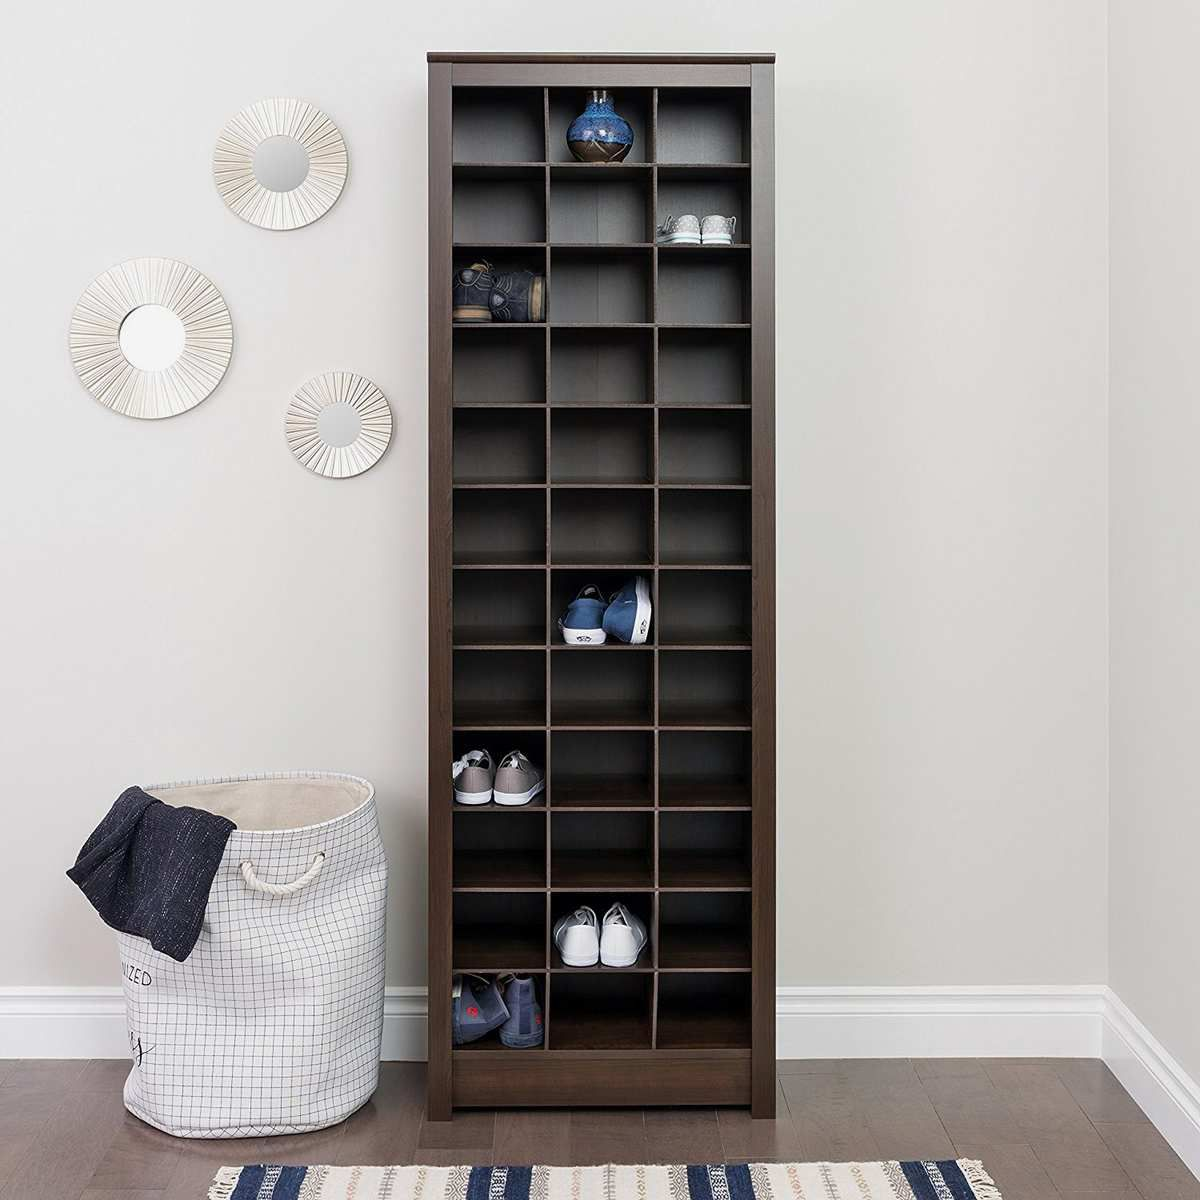 A brown shelf with lots of holes for shoes.